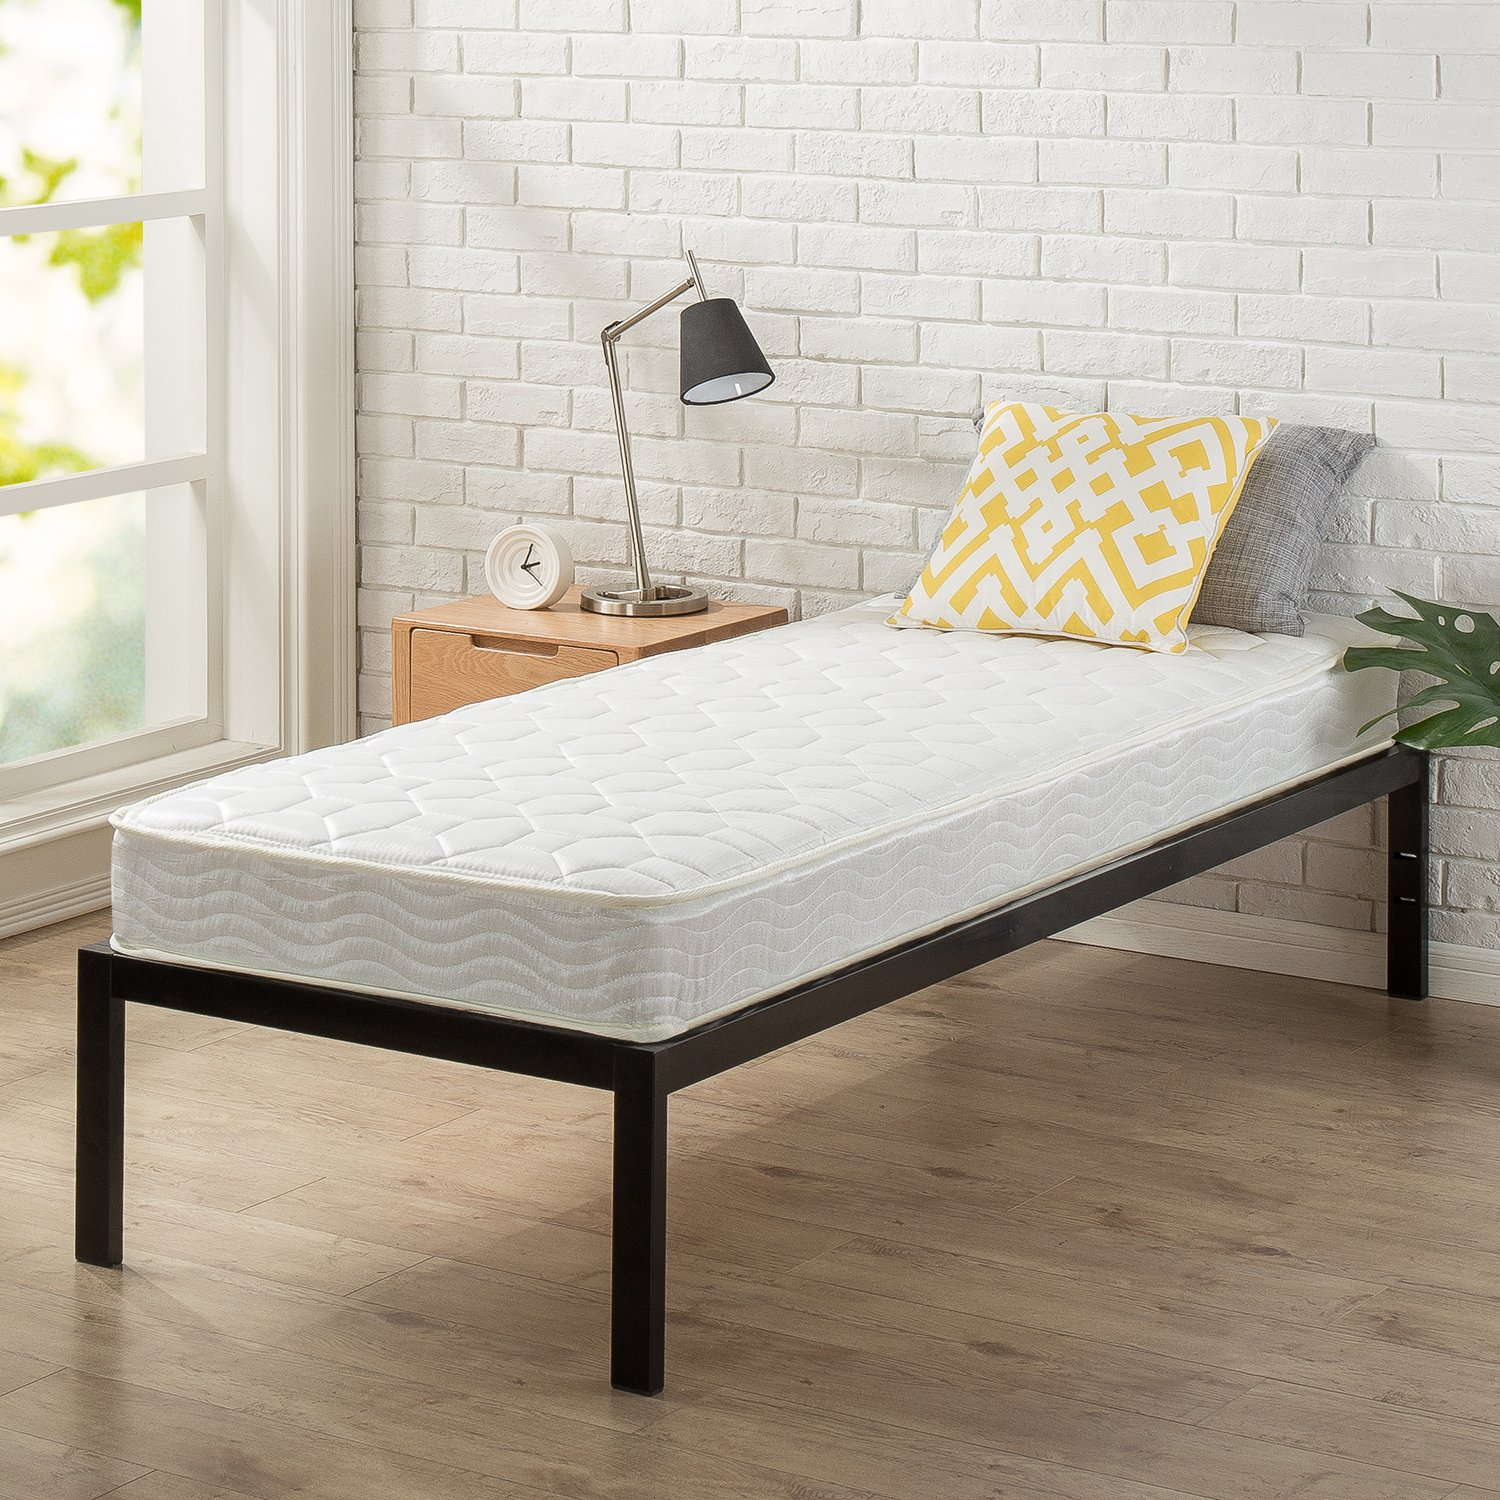 Zinus 6 Inch Spring Mattress, Narrow Twin/Cot Size/RV Bunk/Guest Bed Replacement/30 x 75'' by Zinus